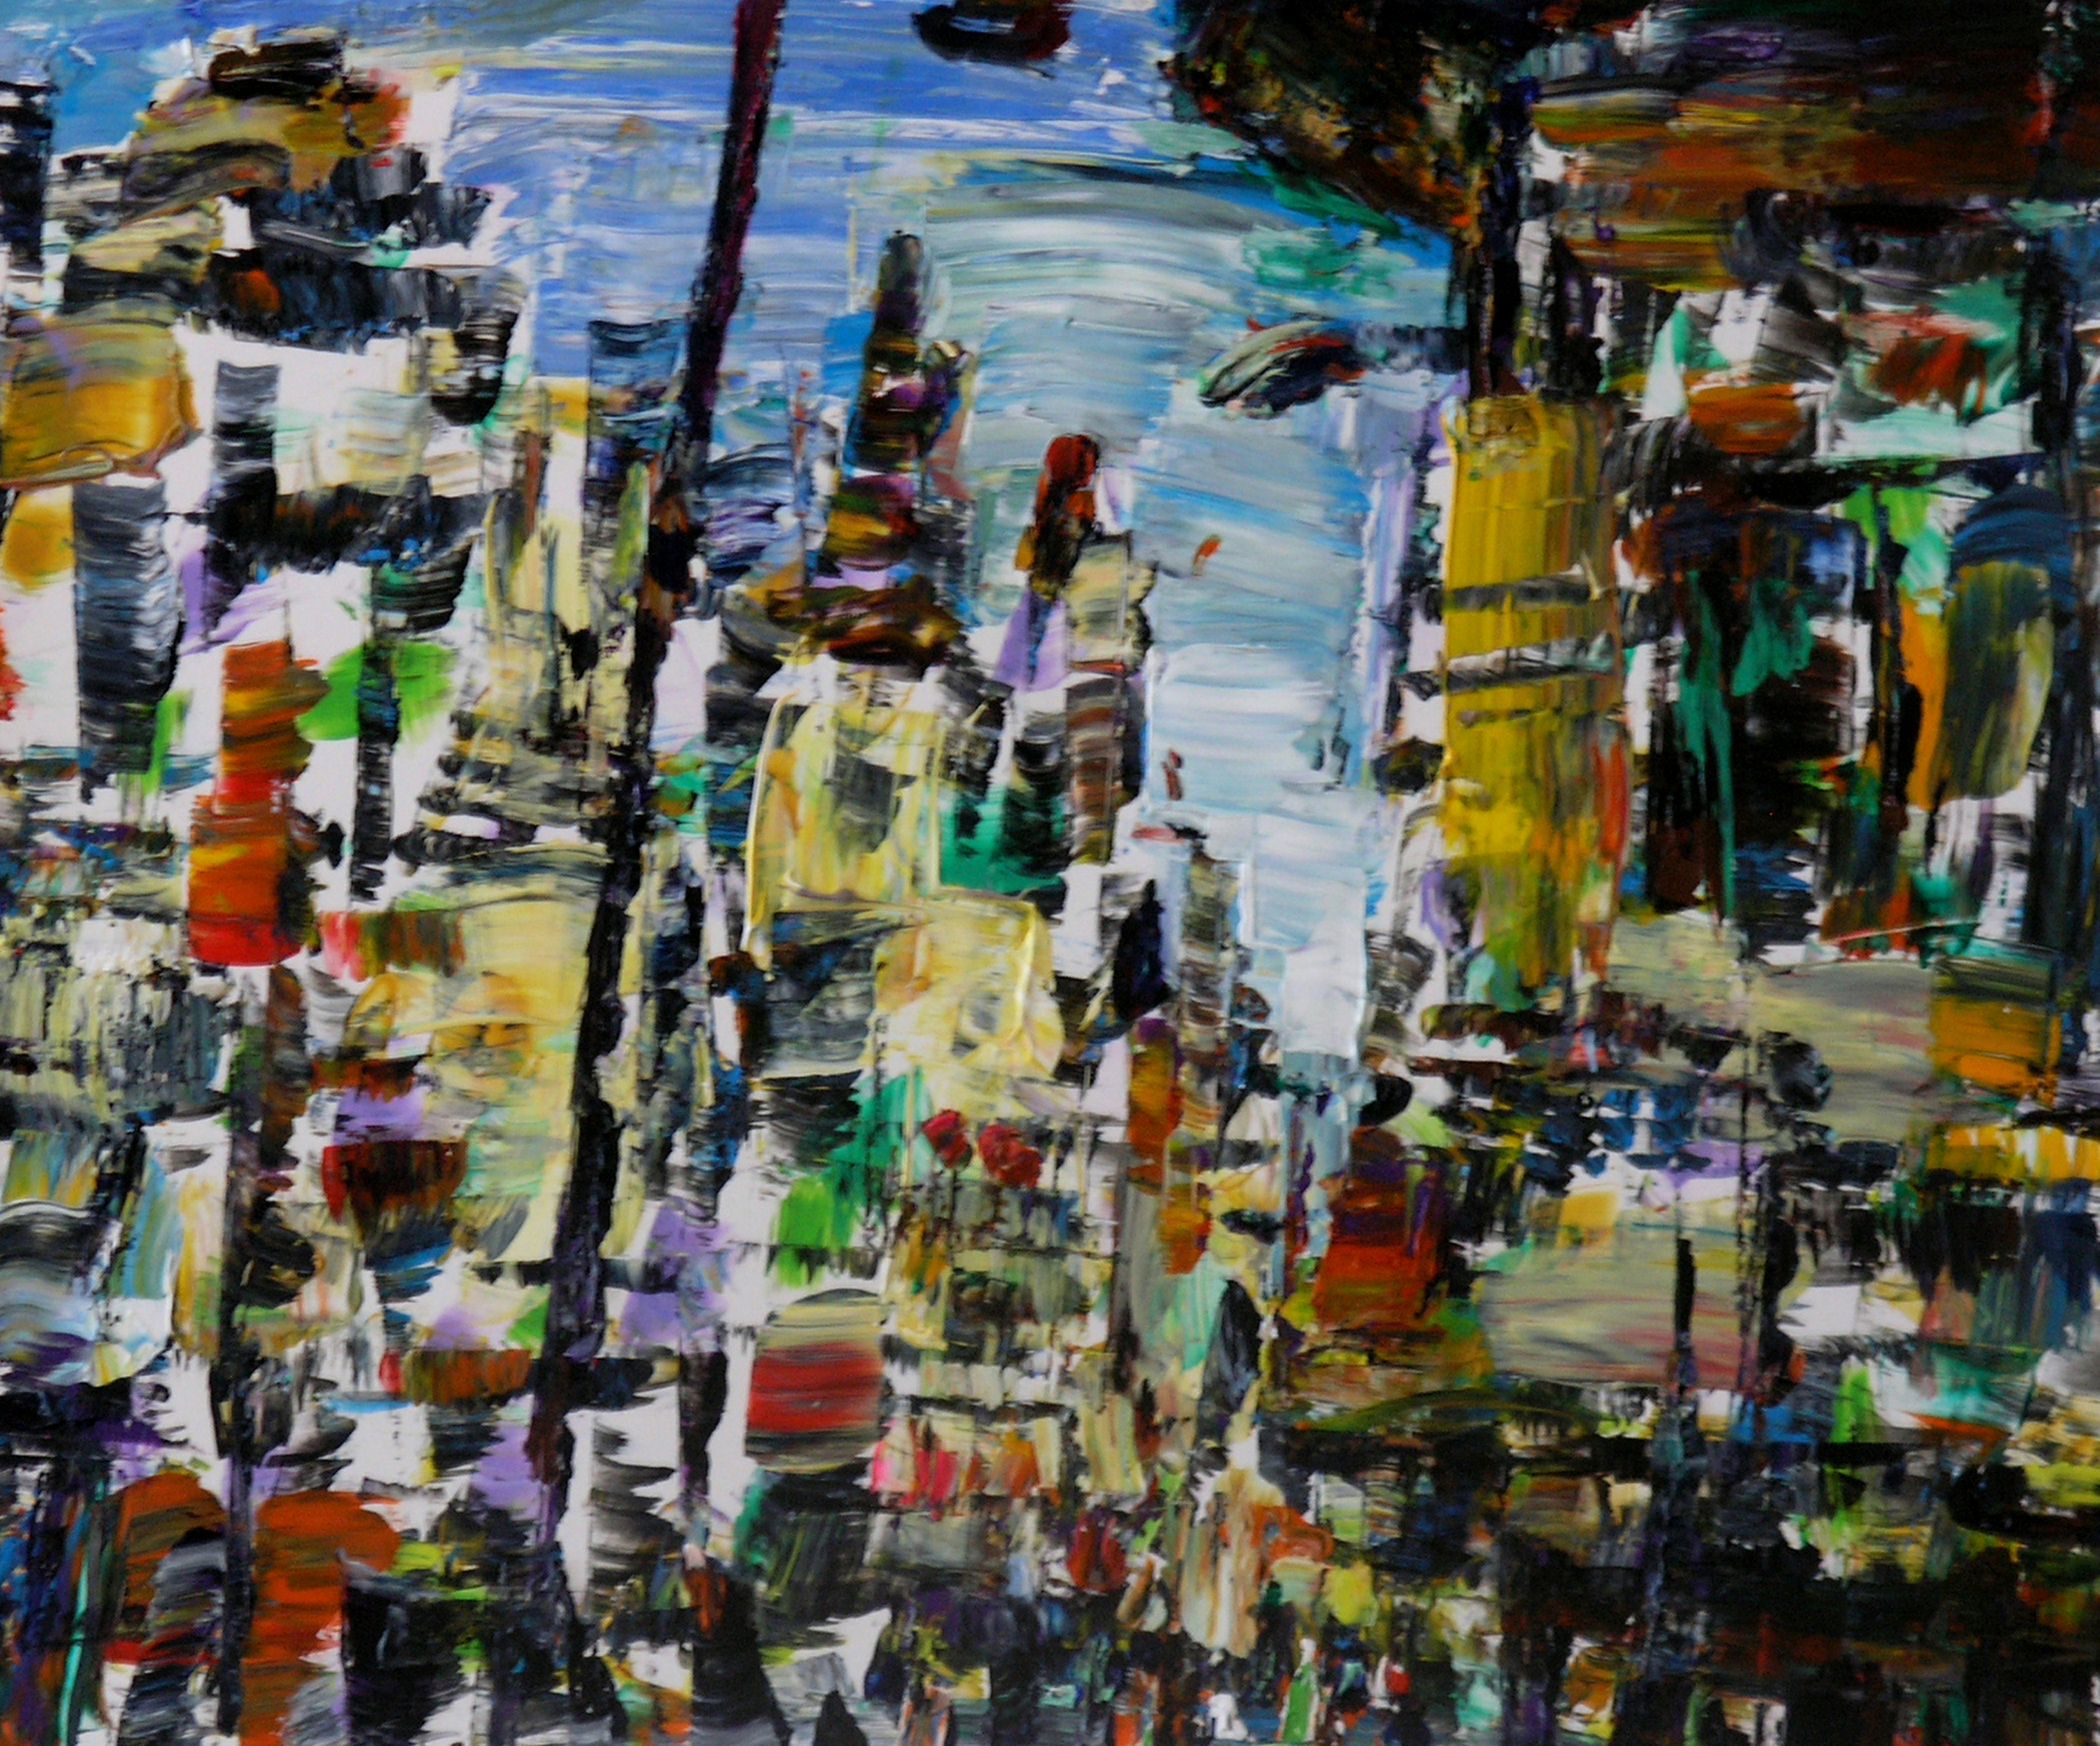 """Wei Kang  The City in My Heart 12, 2010  Acrylic on canvas  20"""" x 24"""""""